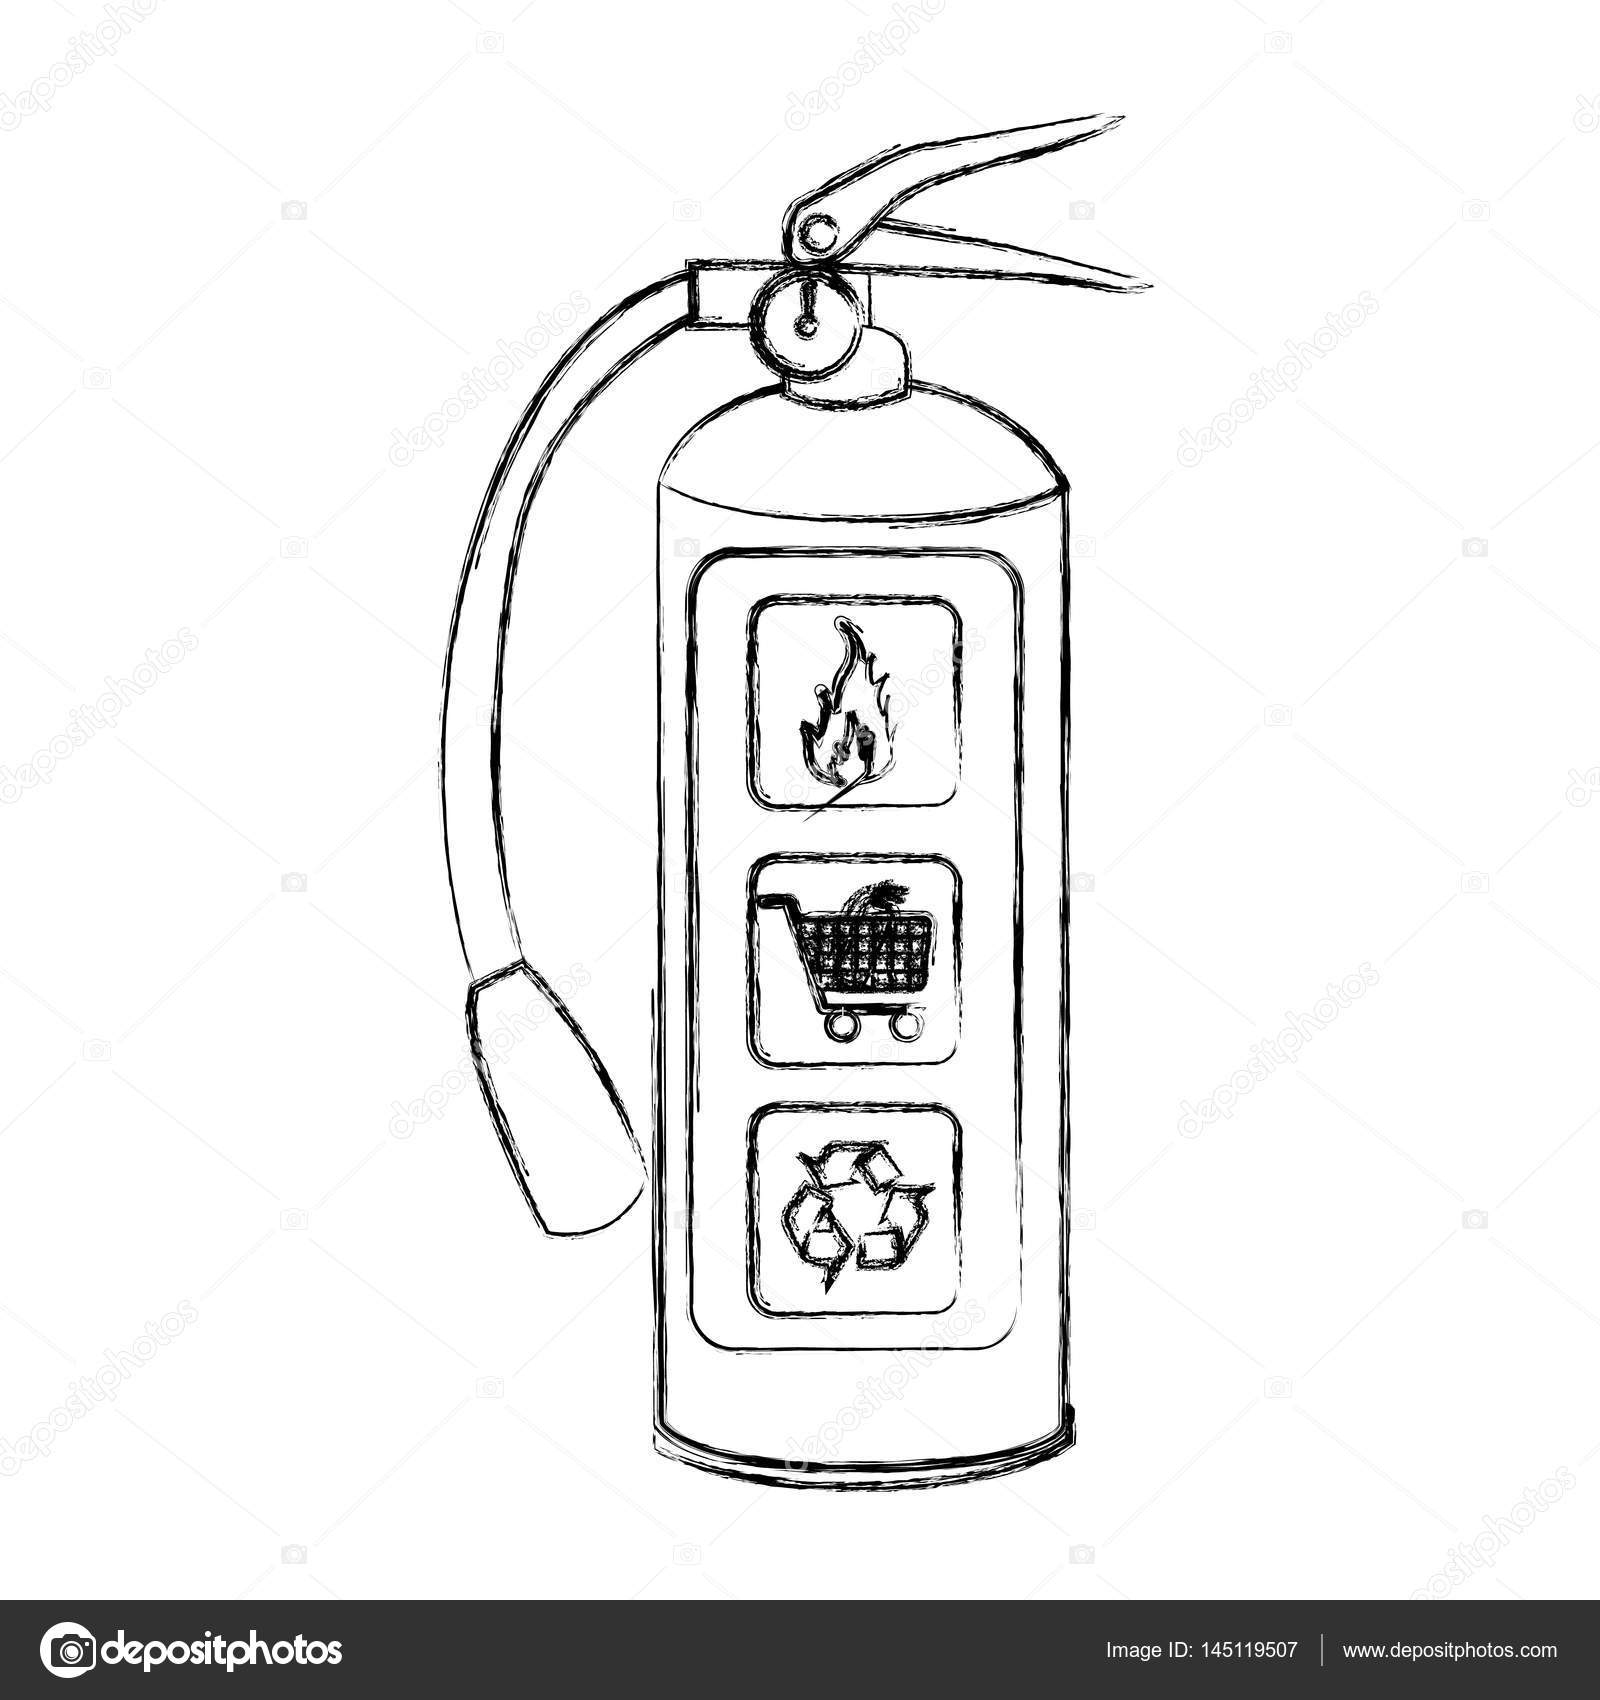 Ce Rohs  pliant Label as well Mortar Tracked Carrier likewise Stock Illustration Blurred Sketch Silhouette Fire Extinguisher in addition Driving Safely in addition P 0900c152801ce559. on fire extinguisher